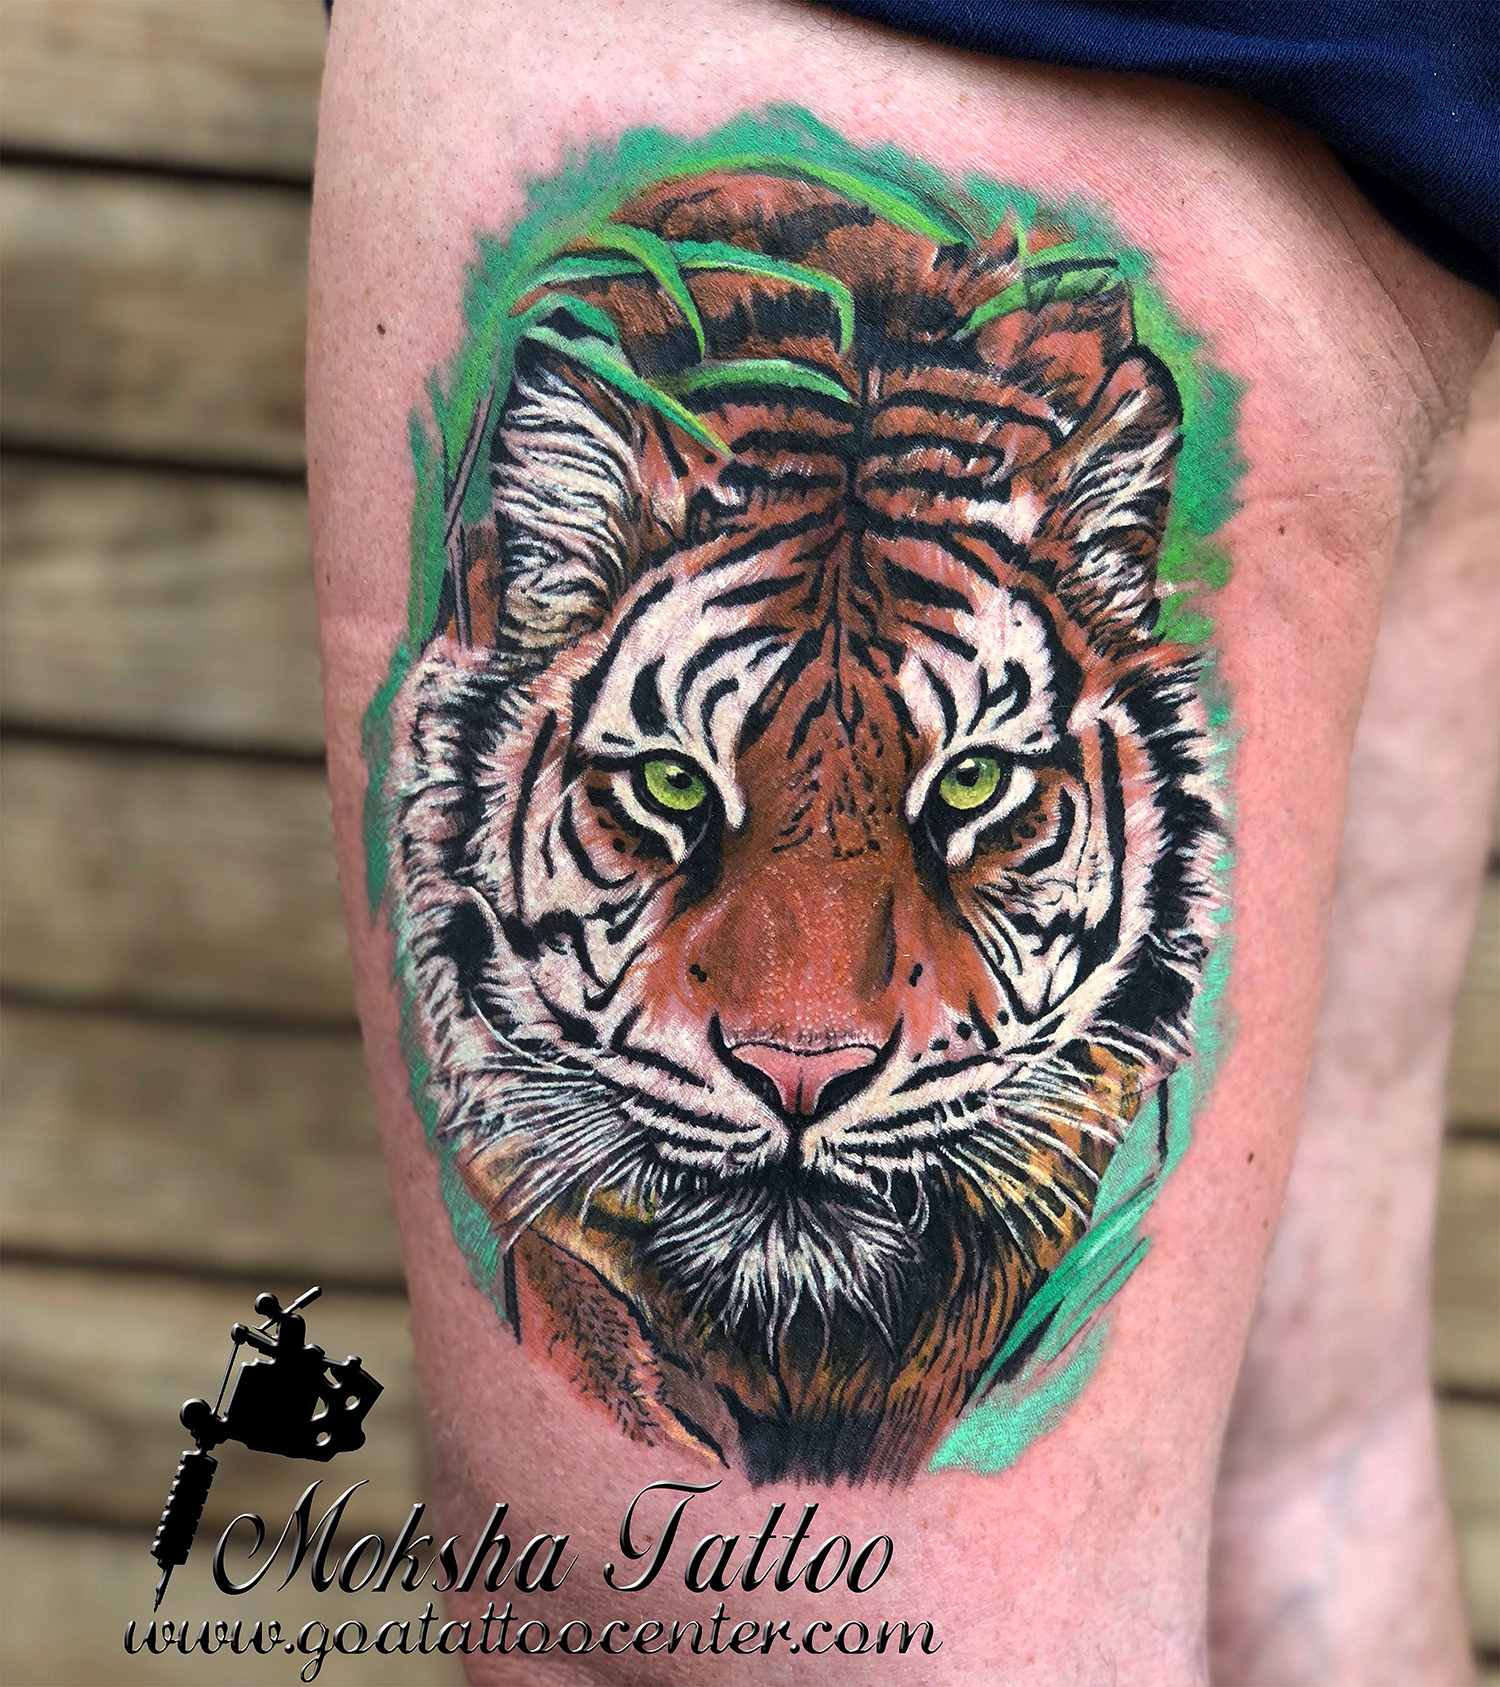 Tiger Tattoo - Done By Mukesh Waghela At Moksha Tattoo Studio Goa India